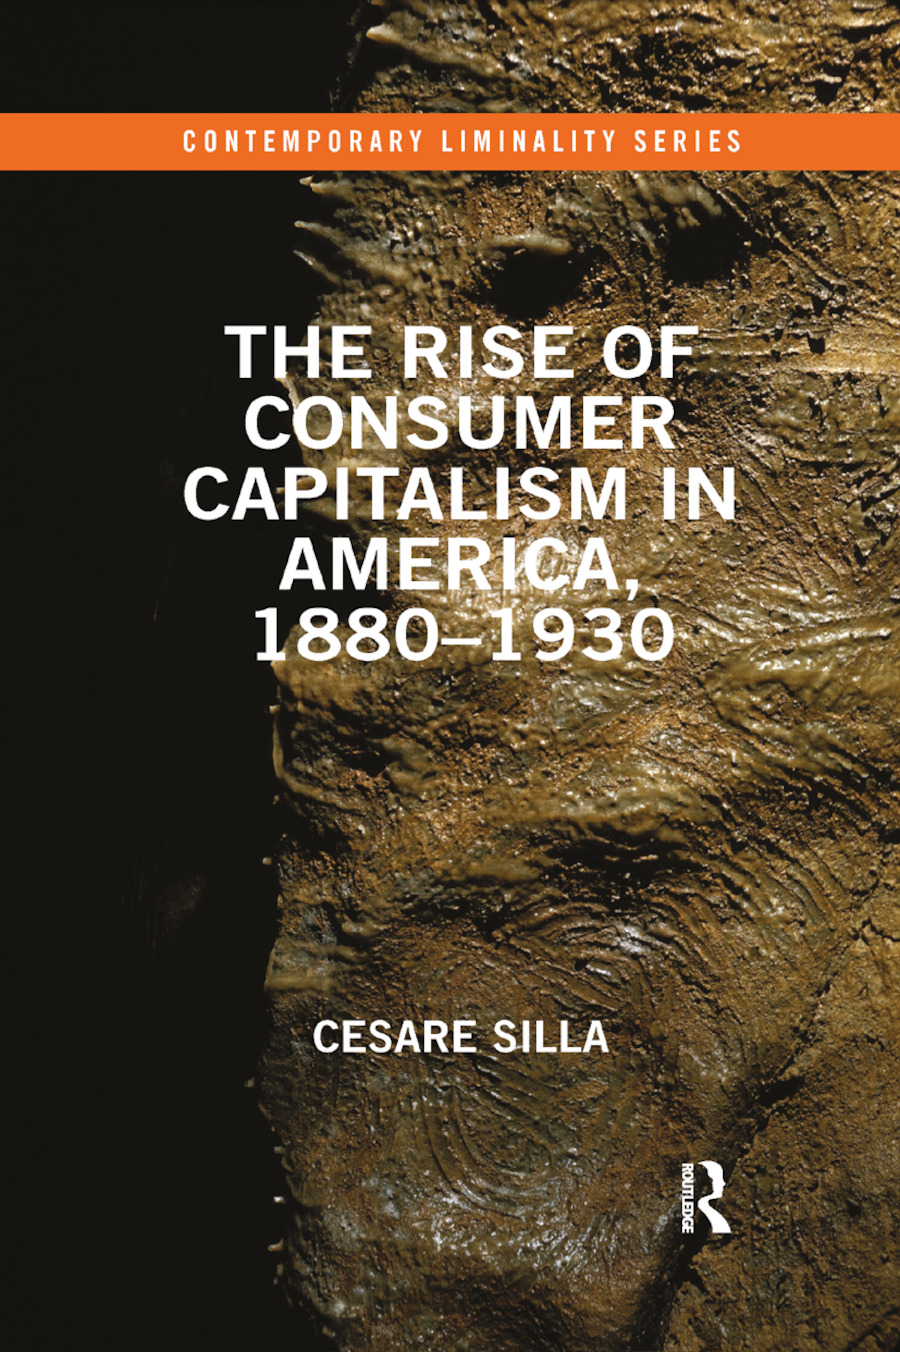 The Rise of Consumer Capitalism in America, 1880 - 1930